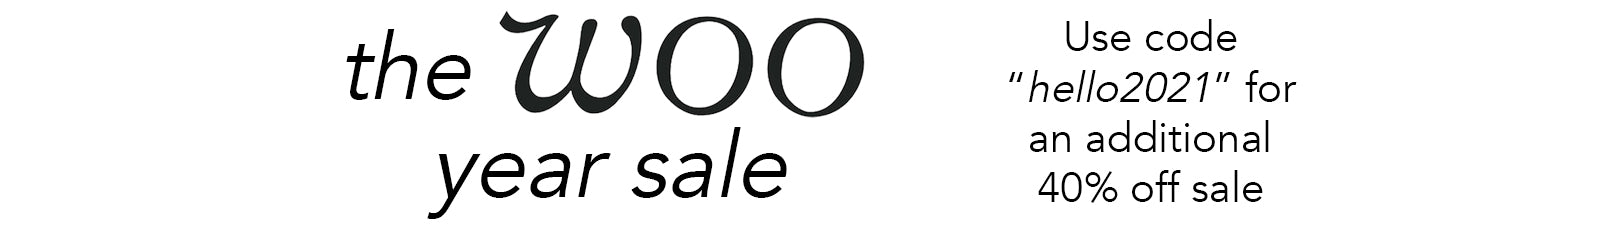 Use code hello2021 to receive an additional 40% off sale items